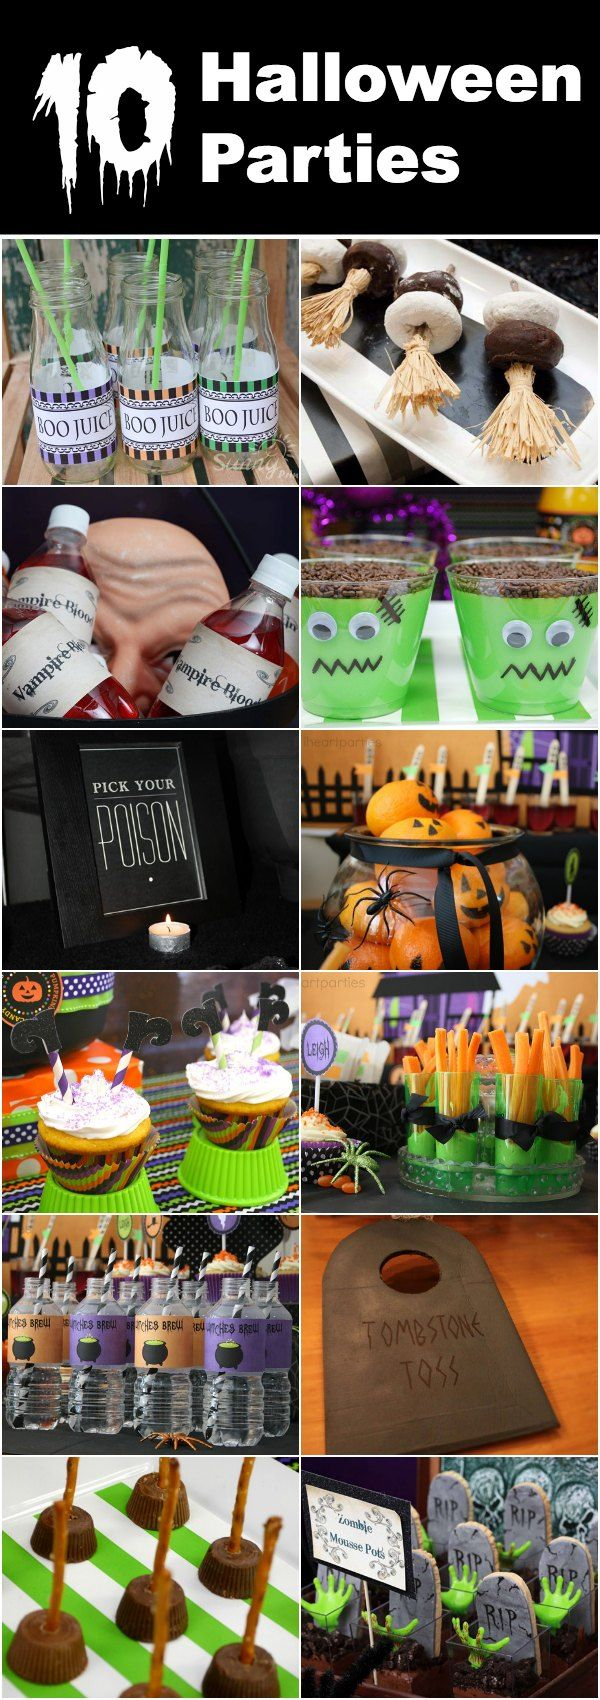 10+ Halloween parties with ridiculously creative ideas